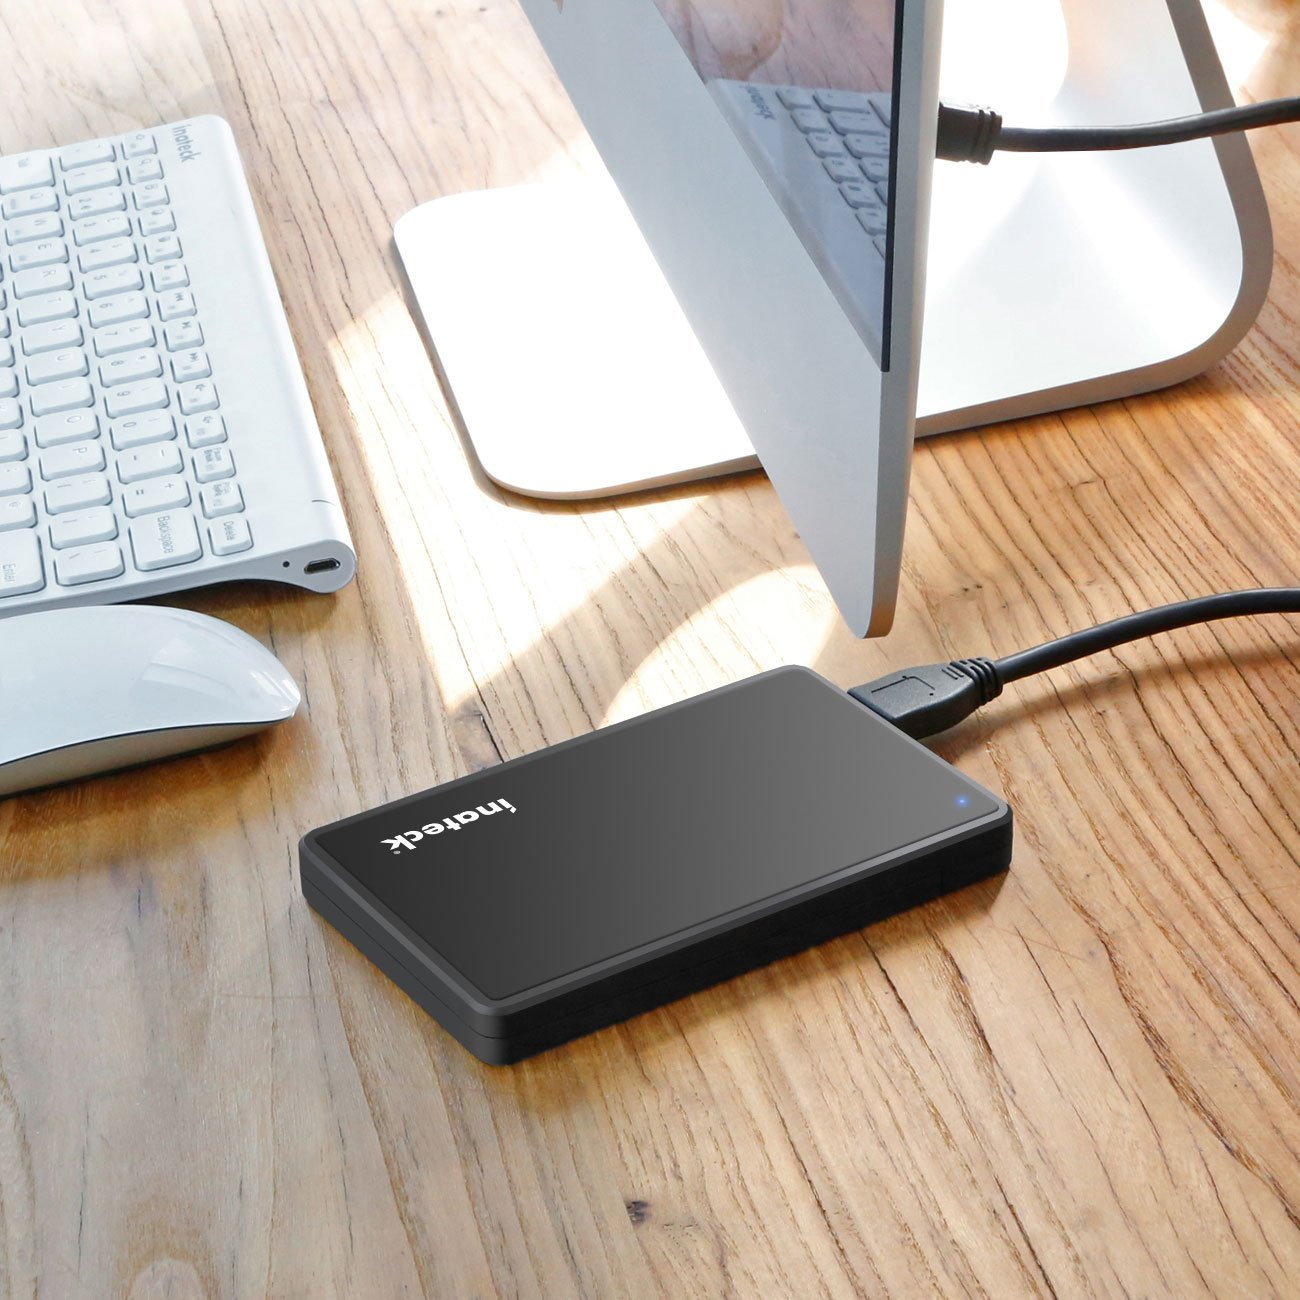 Top 4 Best (HDD) Hard Disk Drive Enclosure – Till November